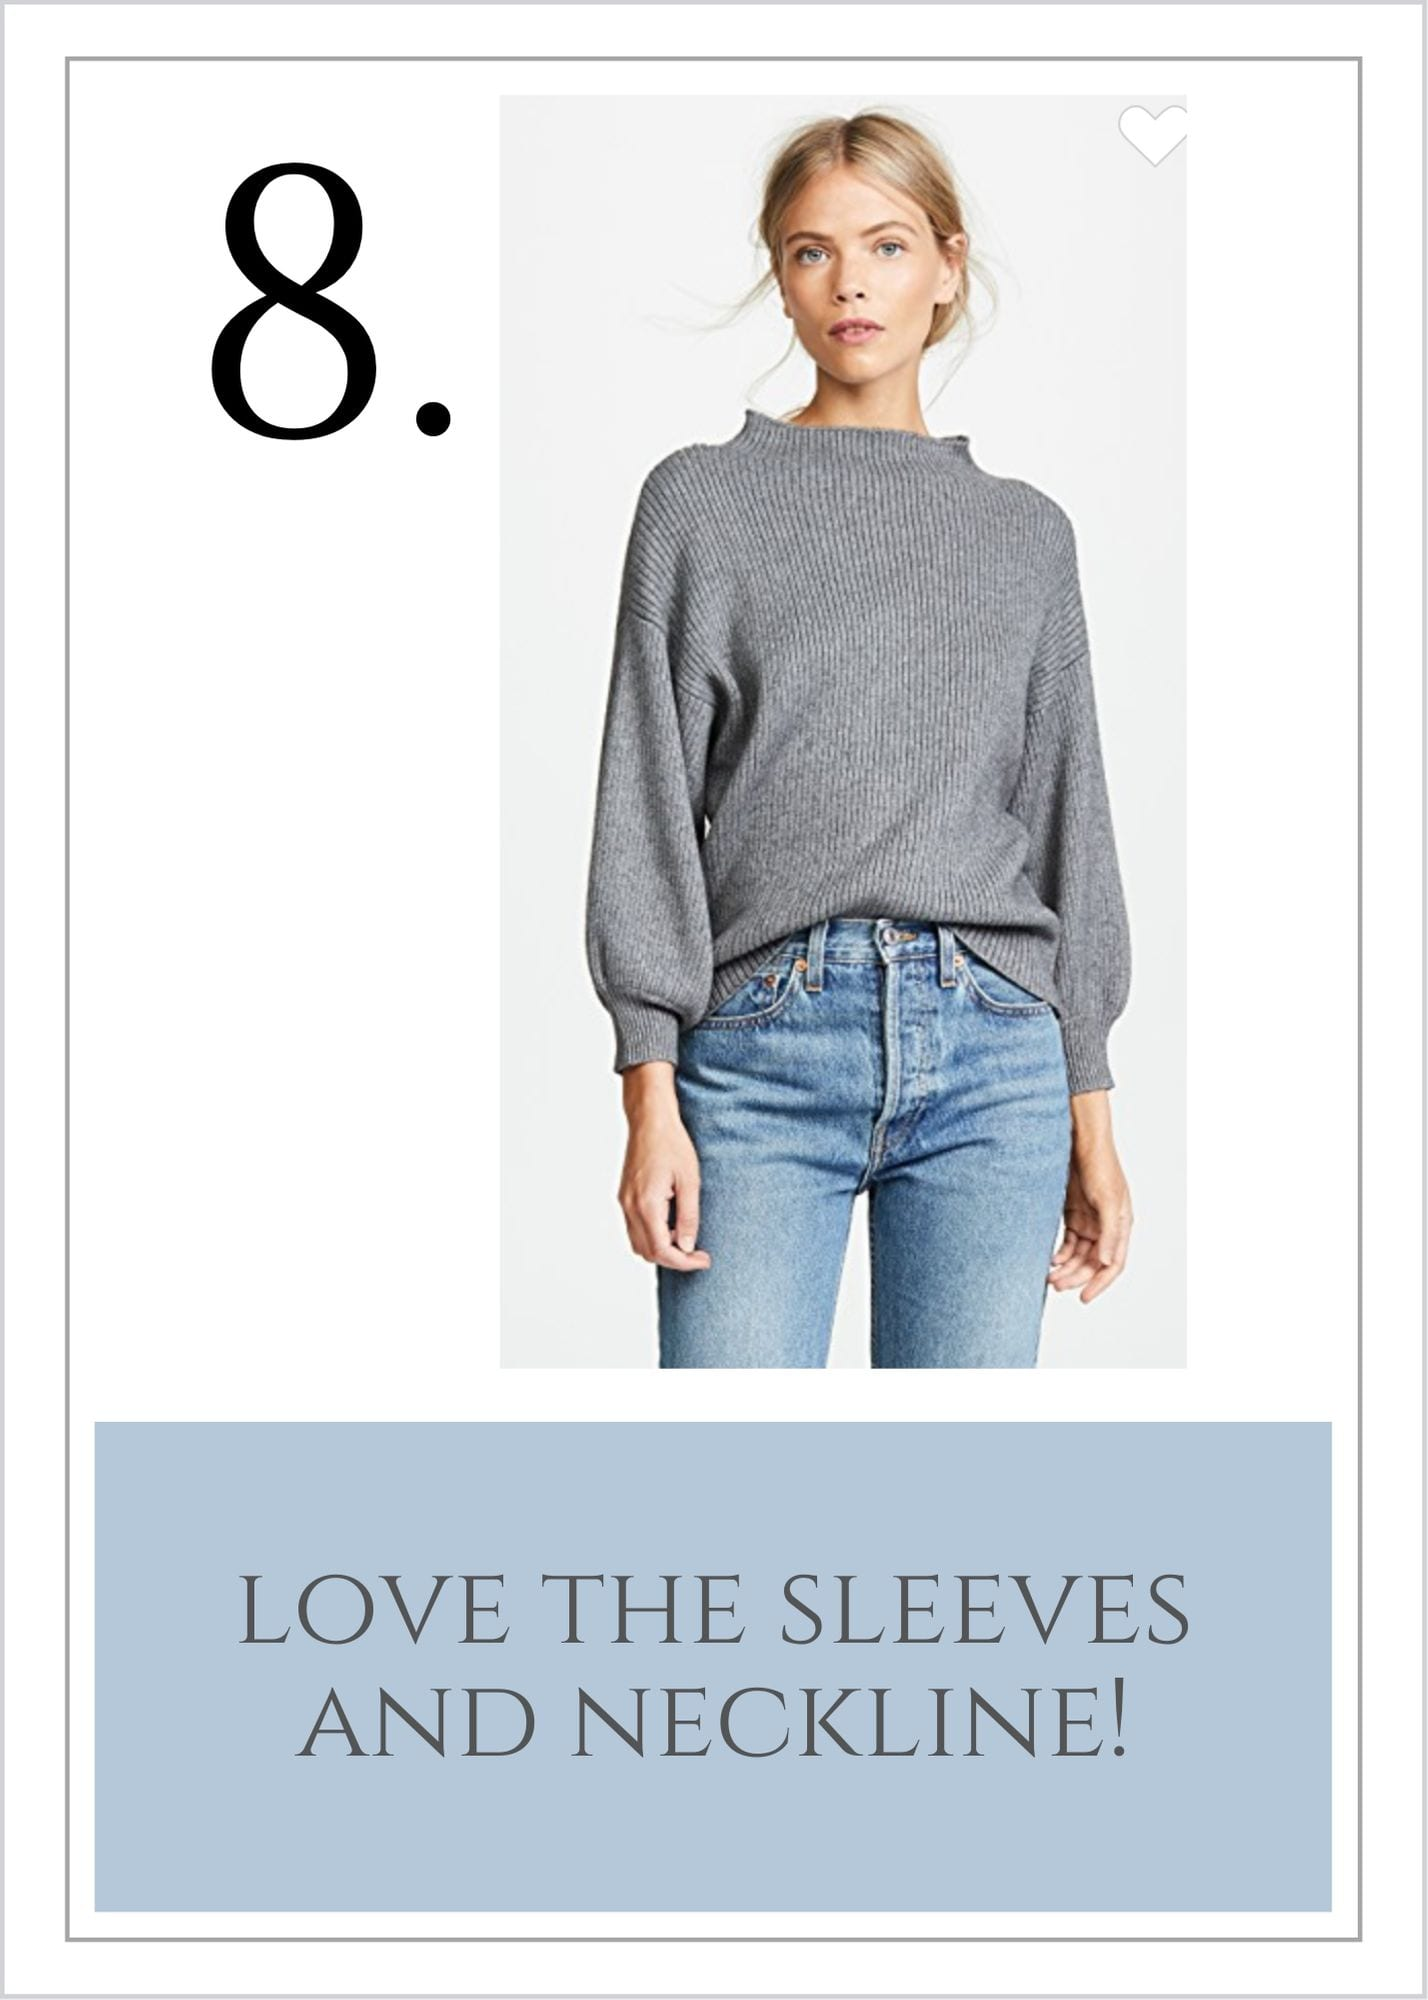 Gray sweater with puffy sleeves.